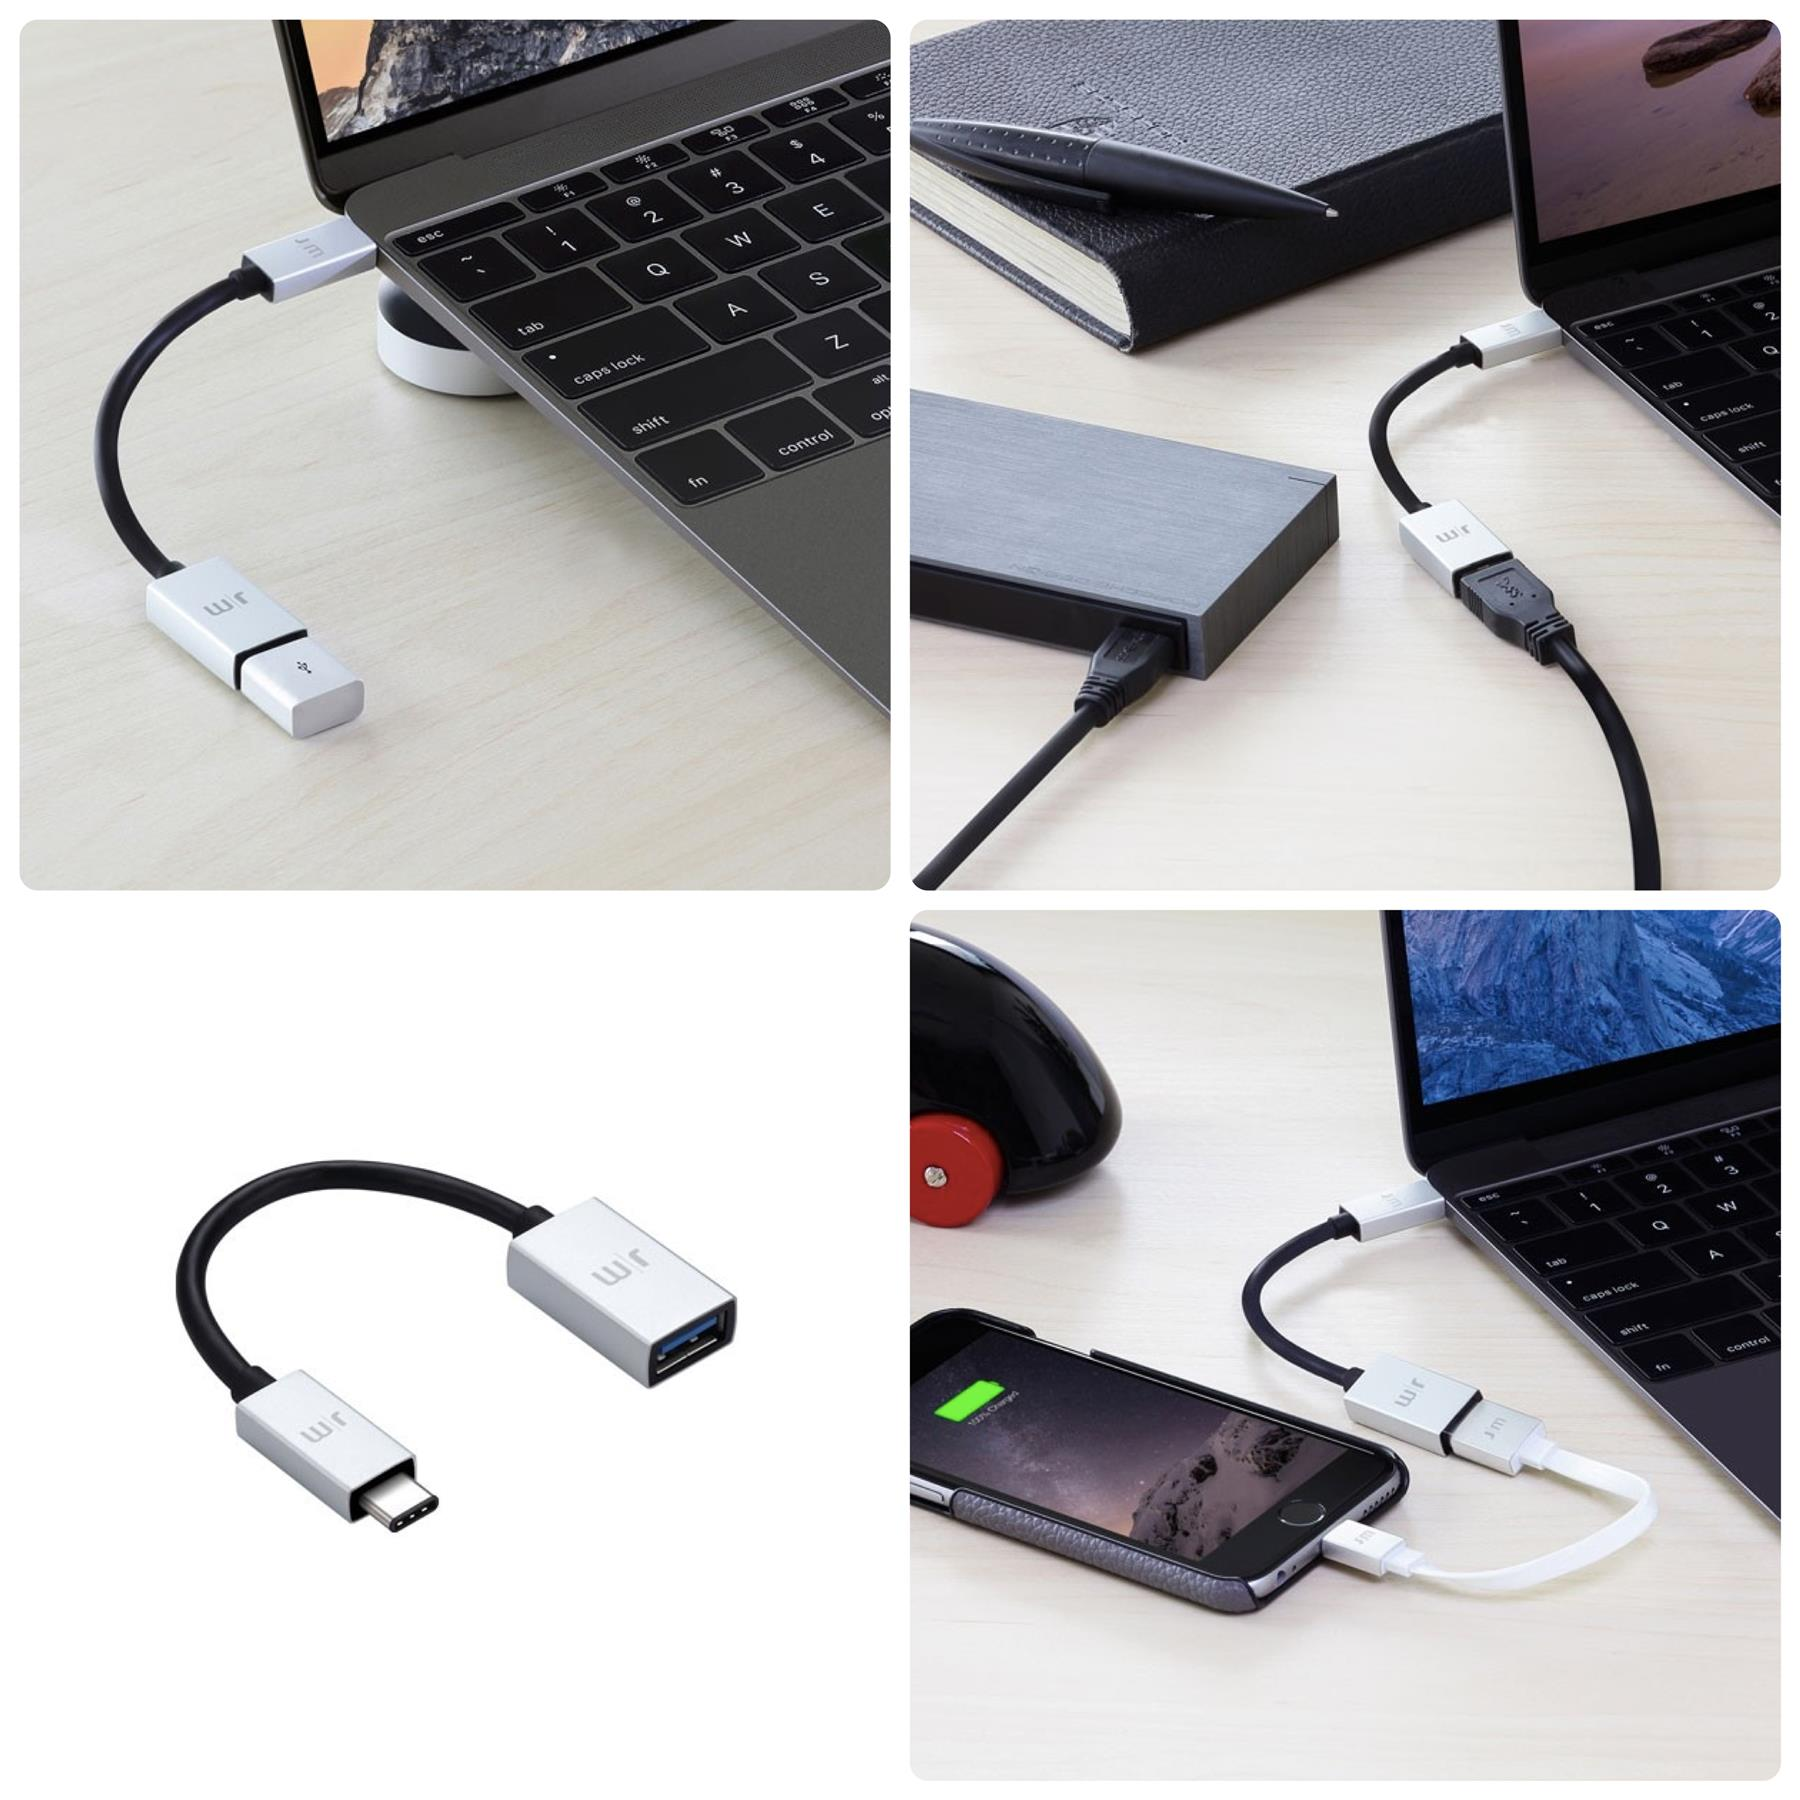 Bdotcom = Original Just Mobile AluCable USB Tyoe-C 3.1 to USB Adapter